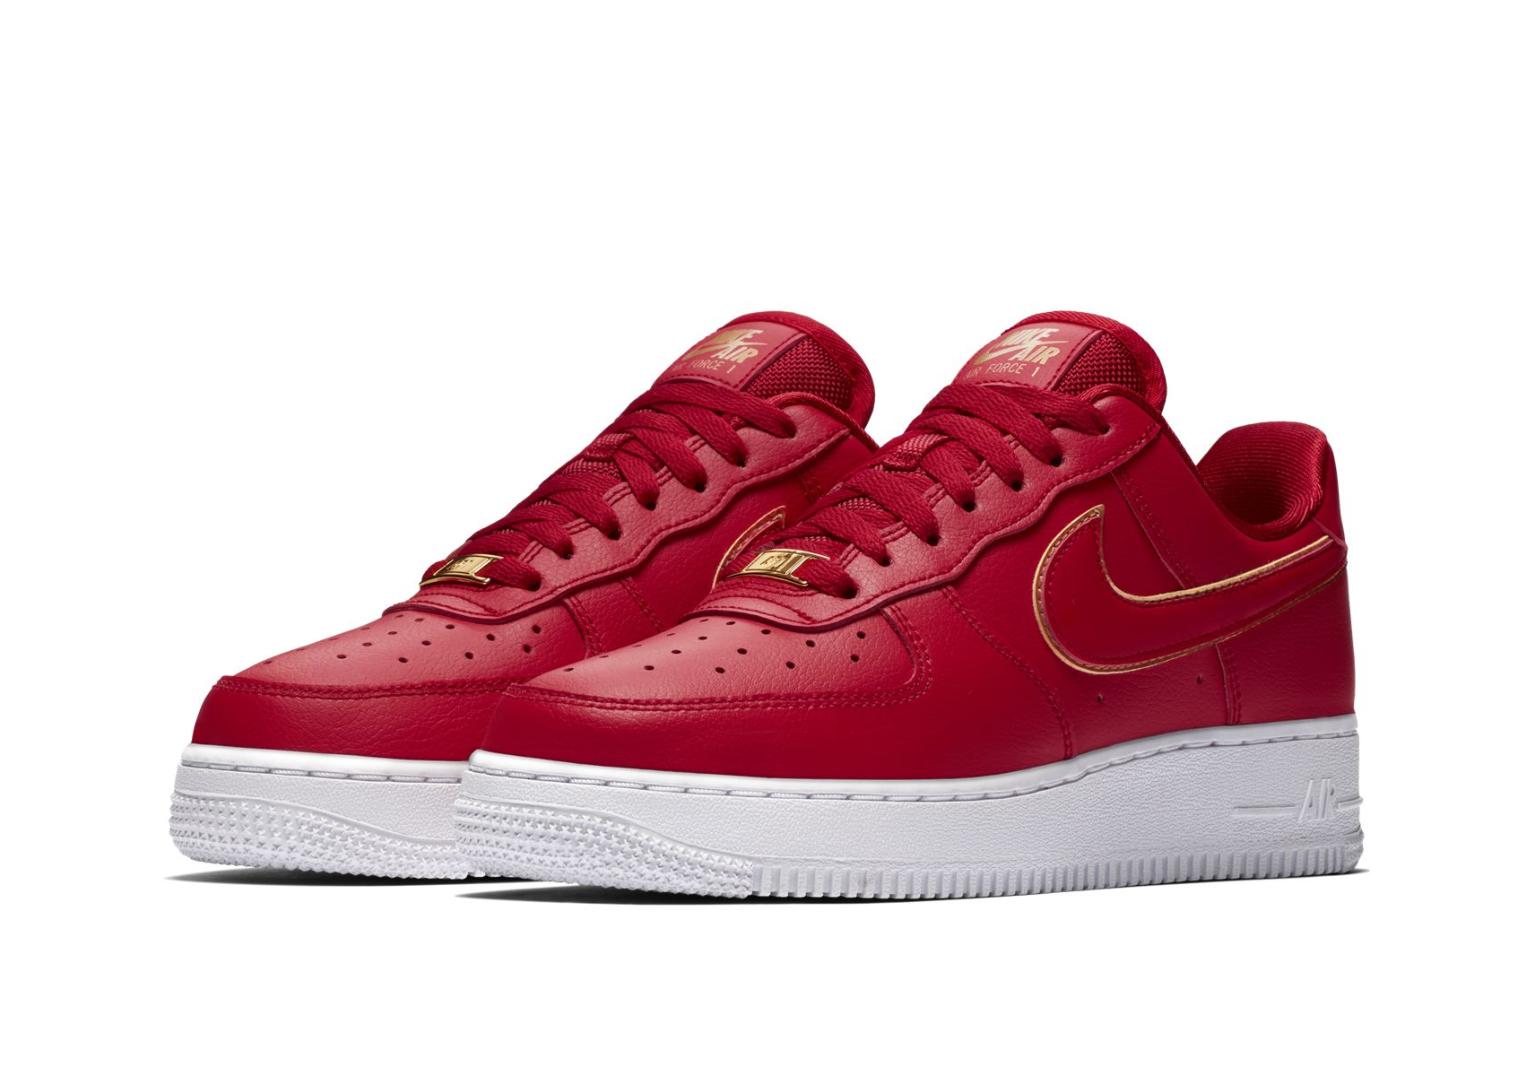 Nike WMNS Air Force 1 '07 Essential Rood Dames Sneaker